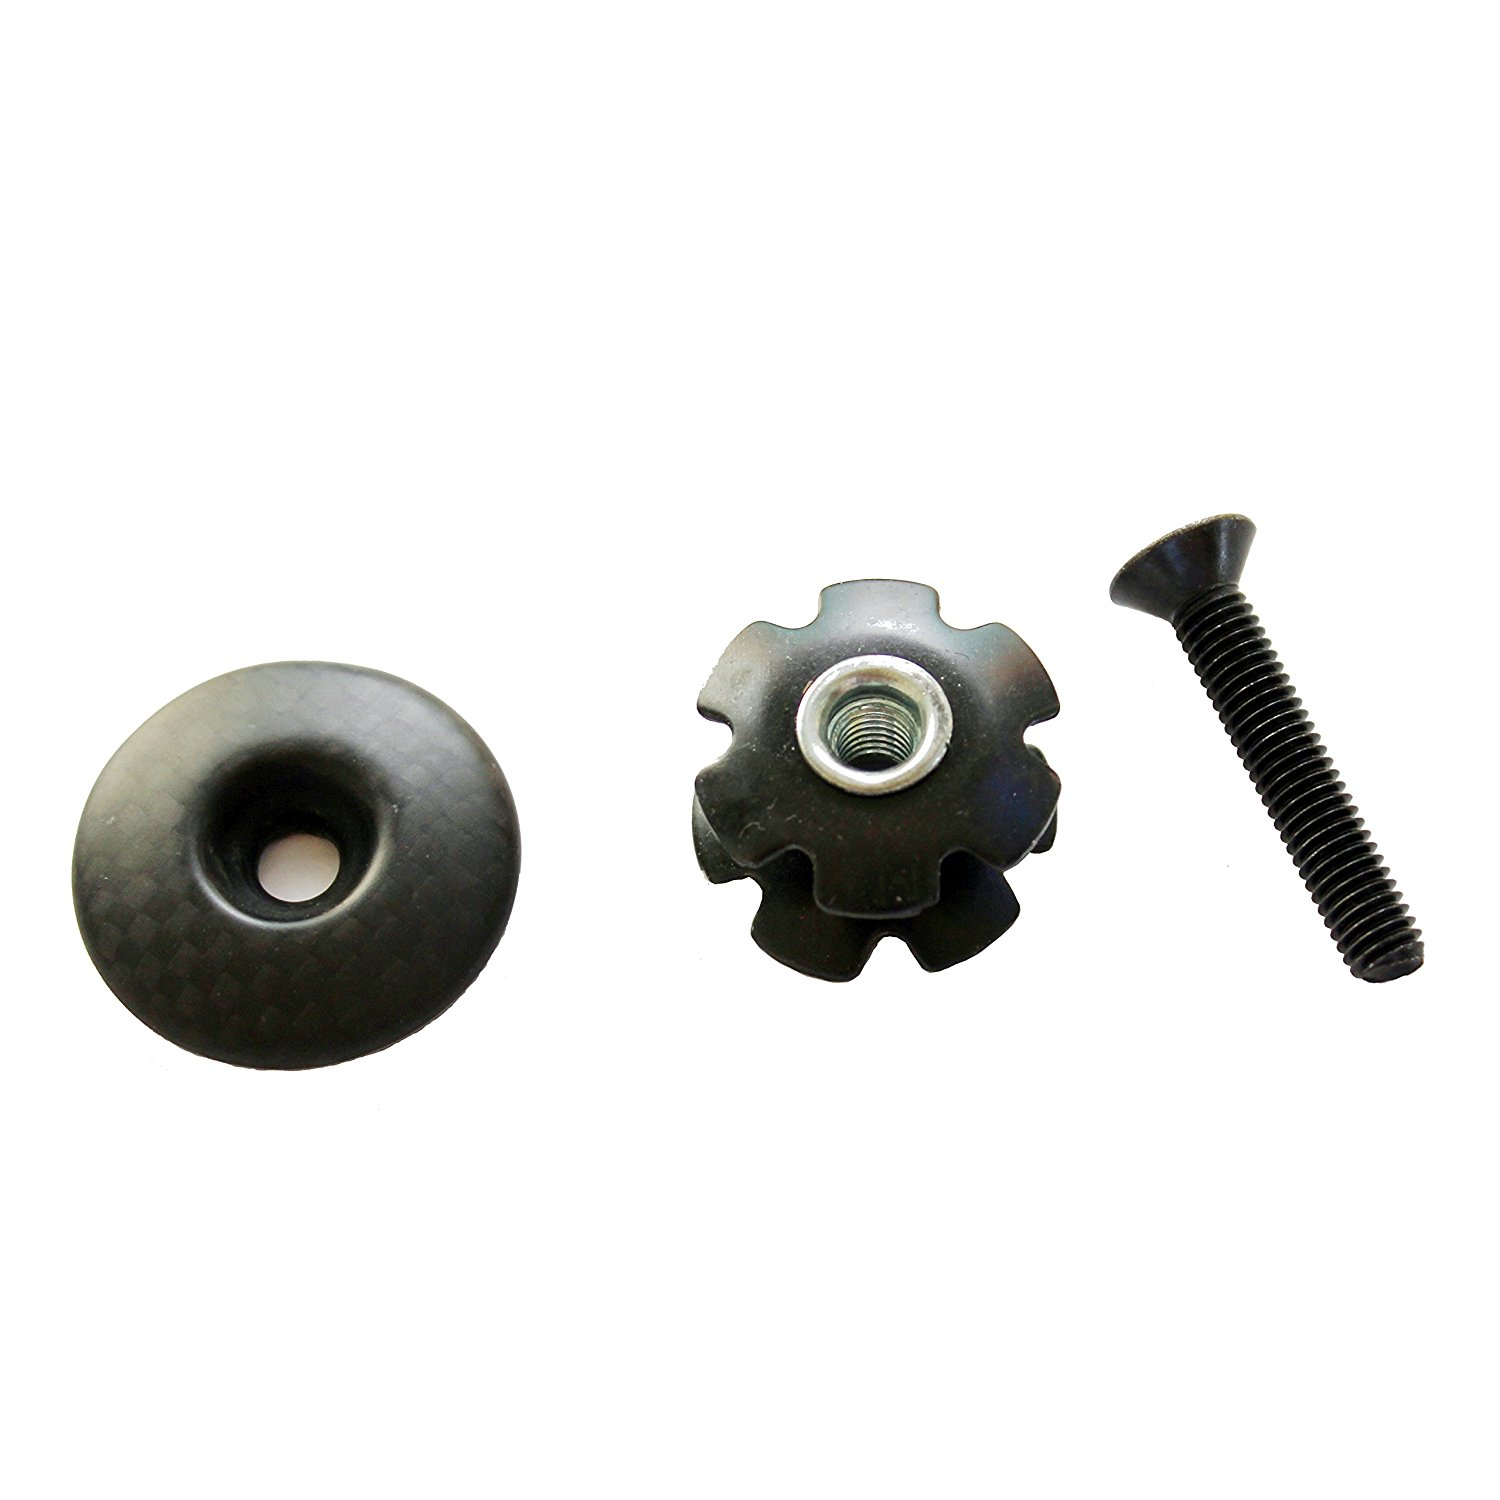 Bicycle Components & Parts Headsets Kits Top Cap Cover Bicycle Handbar Stem With Bolt Carbon Fiber Durable